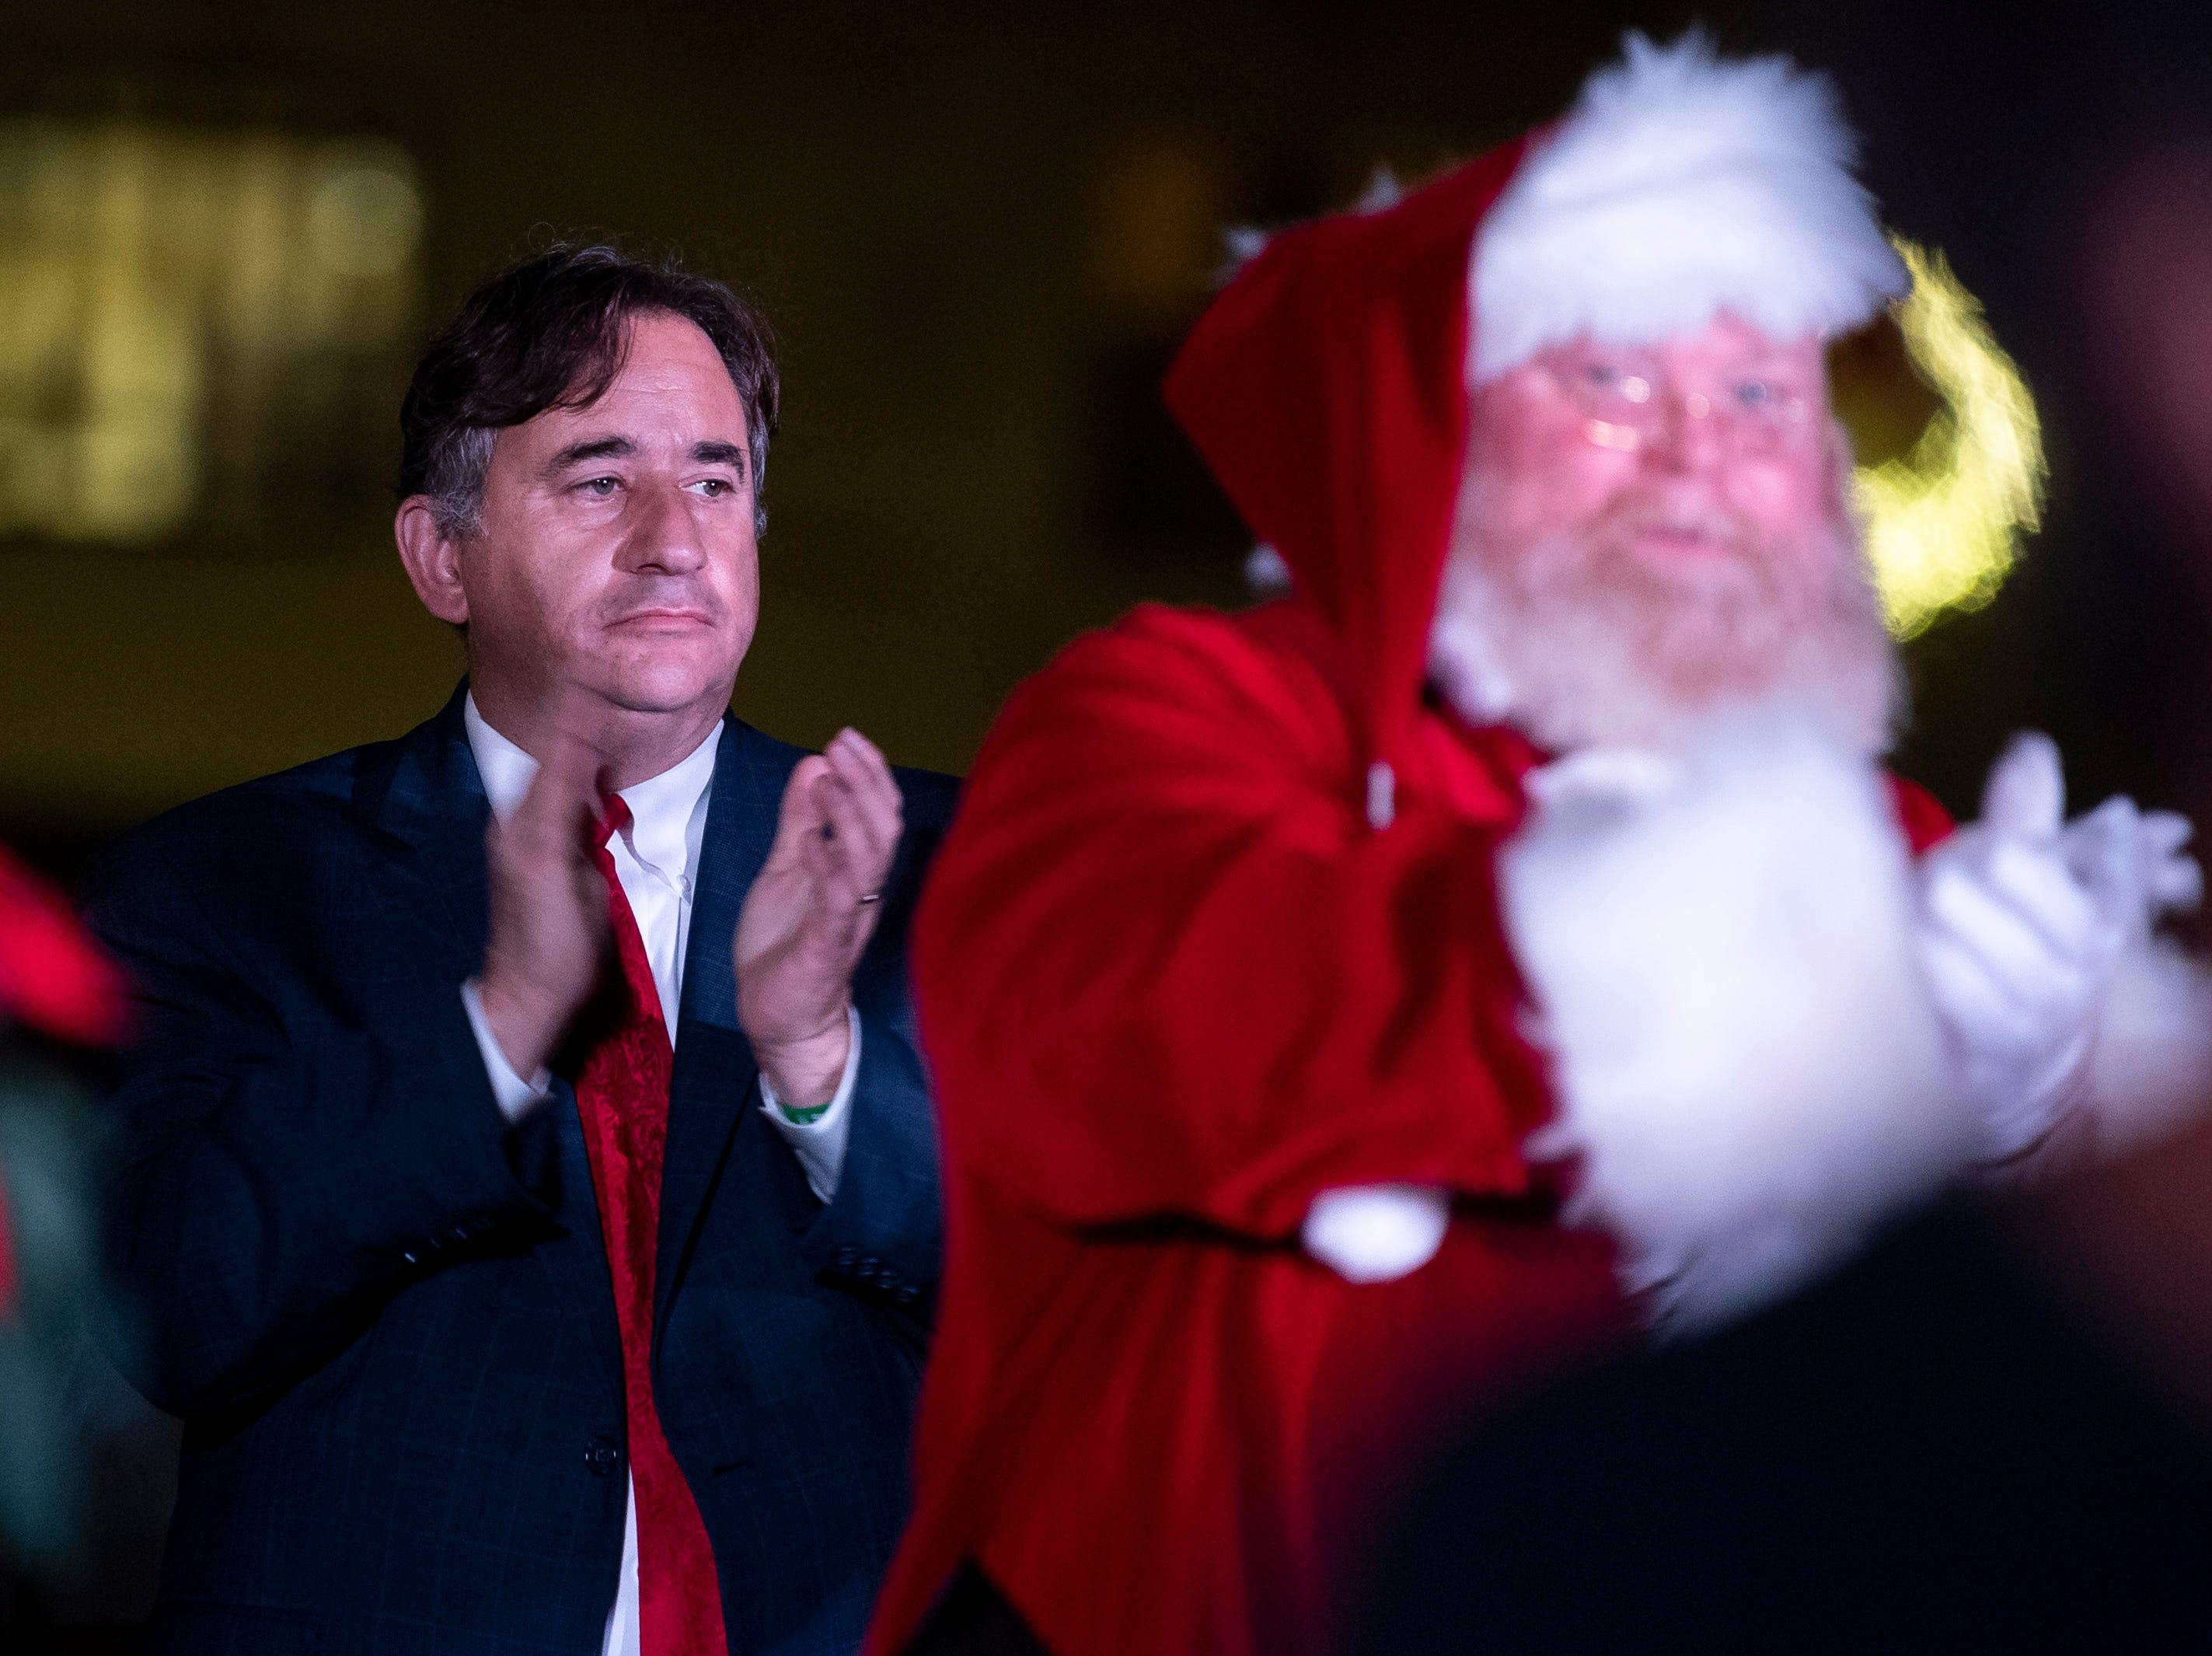 Nashville Vice Mayor Jim Shulman, left, claps along to the The Lake Providence Missionary Baptist Church Choir with Santa Claus, right, during the Metro Nashville Christmas Tree Lighting event at Public Square Park in Nashville, Tenn., Friday, Nov. 30, 2018.